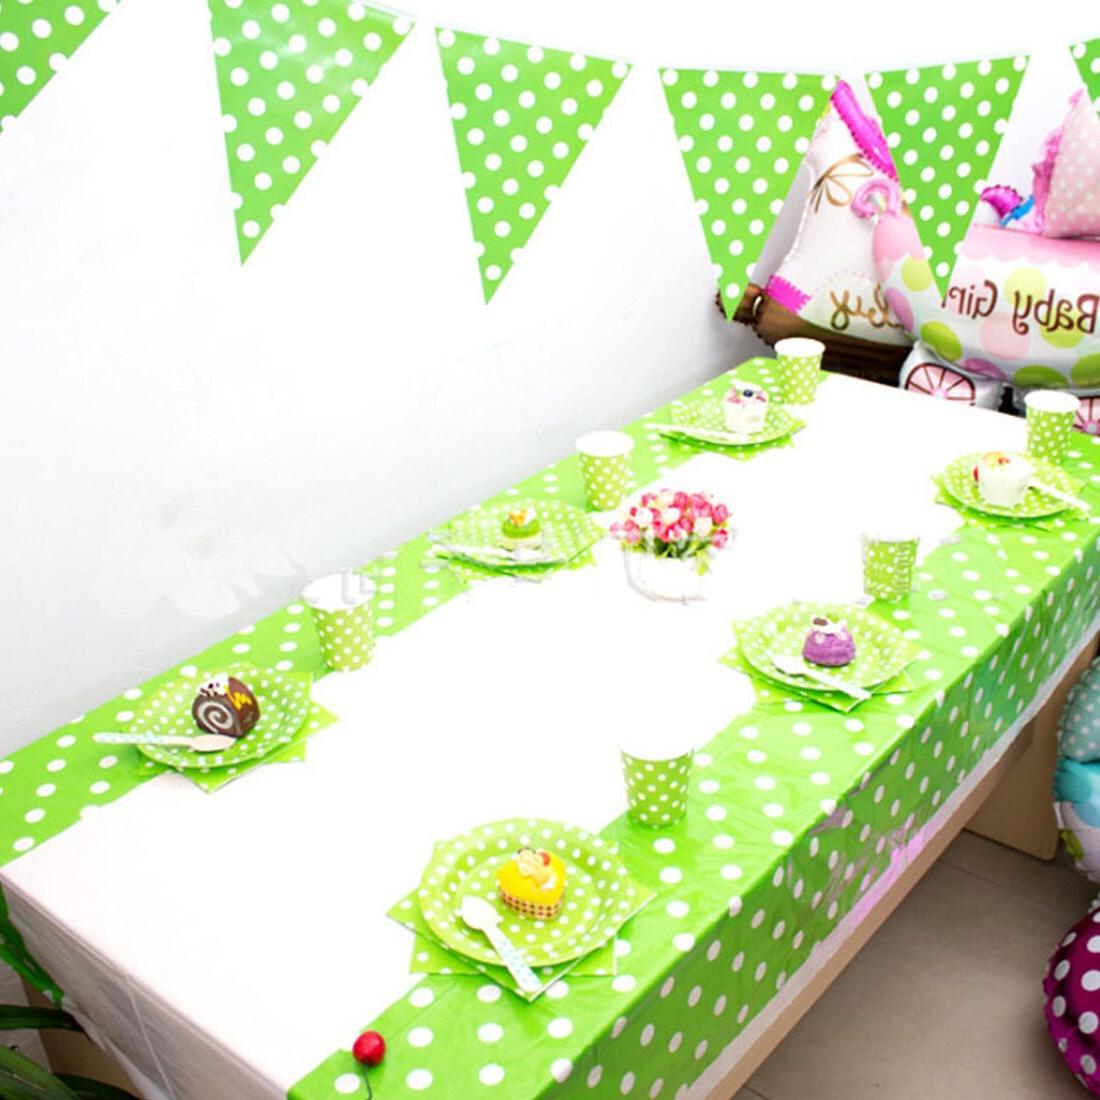 108 * Dot <font><b>Cloth</b></font> <font><b>Table</b></font> <font><b>Plastic</b></font> Birthday Party Decoration Tablecloth